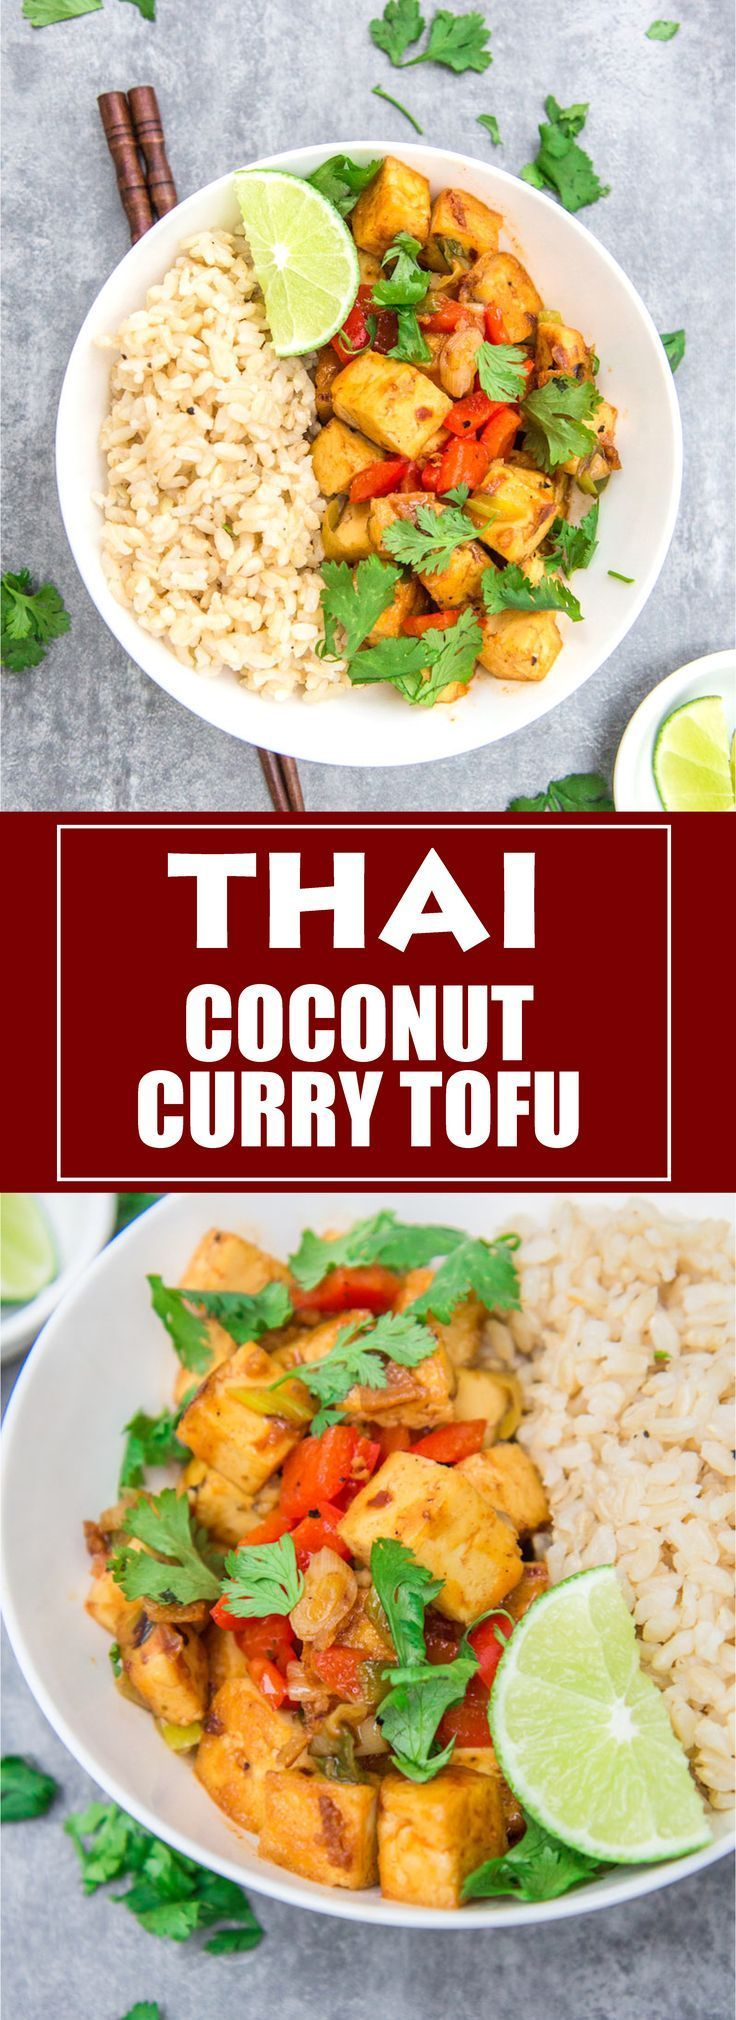 coconut curry tofu This Thai coconut curry tofu is bursting with flavours of Thailand! You'll want to eat tofu like this every day!This Thai coconut curry tofu is bursting with flavours of Thailand! You'll want to eat tofu like this every day!